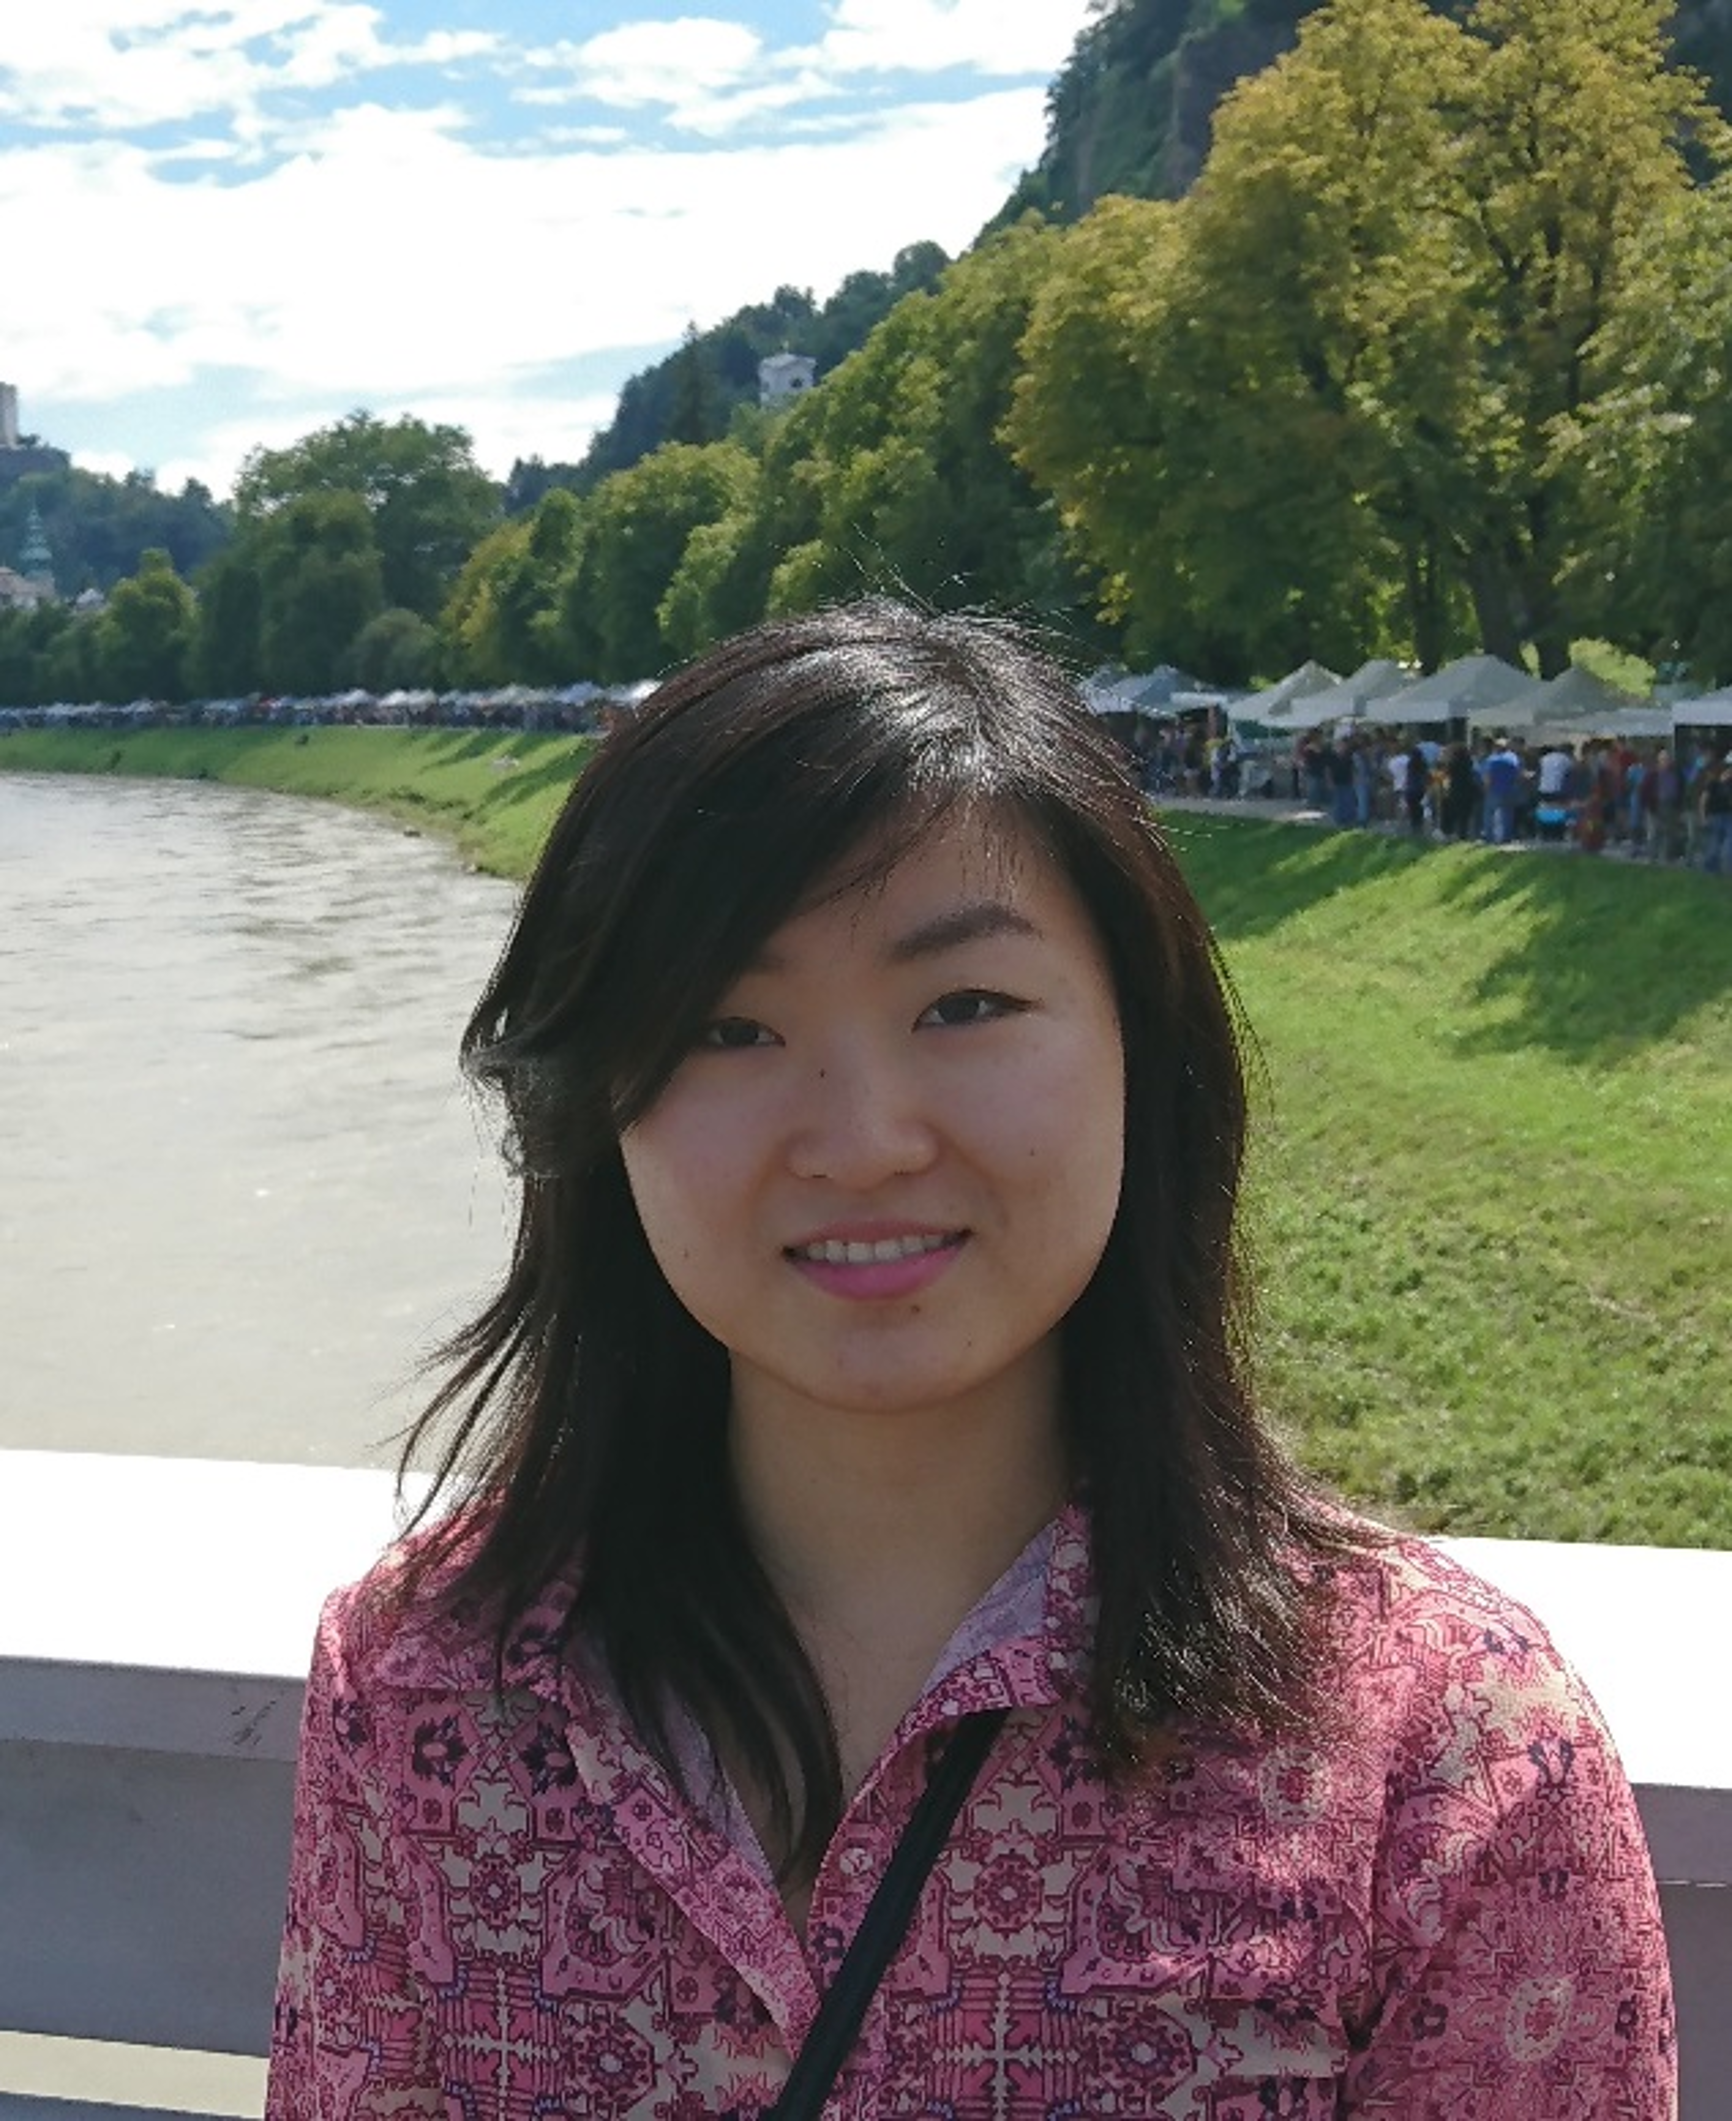 "Stella Wang - ""I am a graduate student in the Cell and Molecular Biology program. I completed my B.S. in bioengineering at Caltech in 2016 and joined the lab in 2017. I am interested in improving the capabilities of DNA rational design in cellular, material, and information processing applications. Currently, I am developing detailed nearest neighbor models for nucleic acid variants using high-throughput means. I am also working on improving strand displacement mechanisms in cellular contexts."""